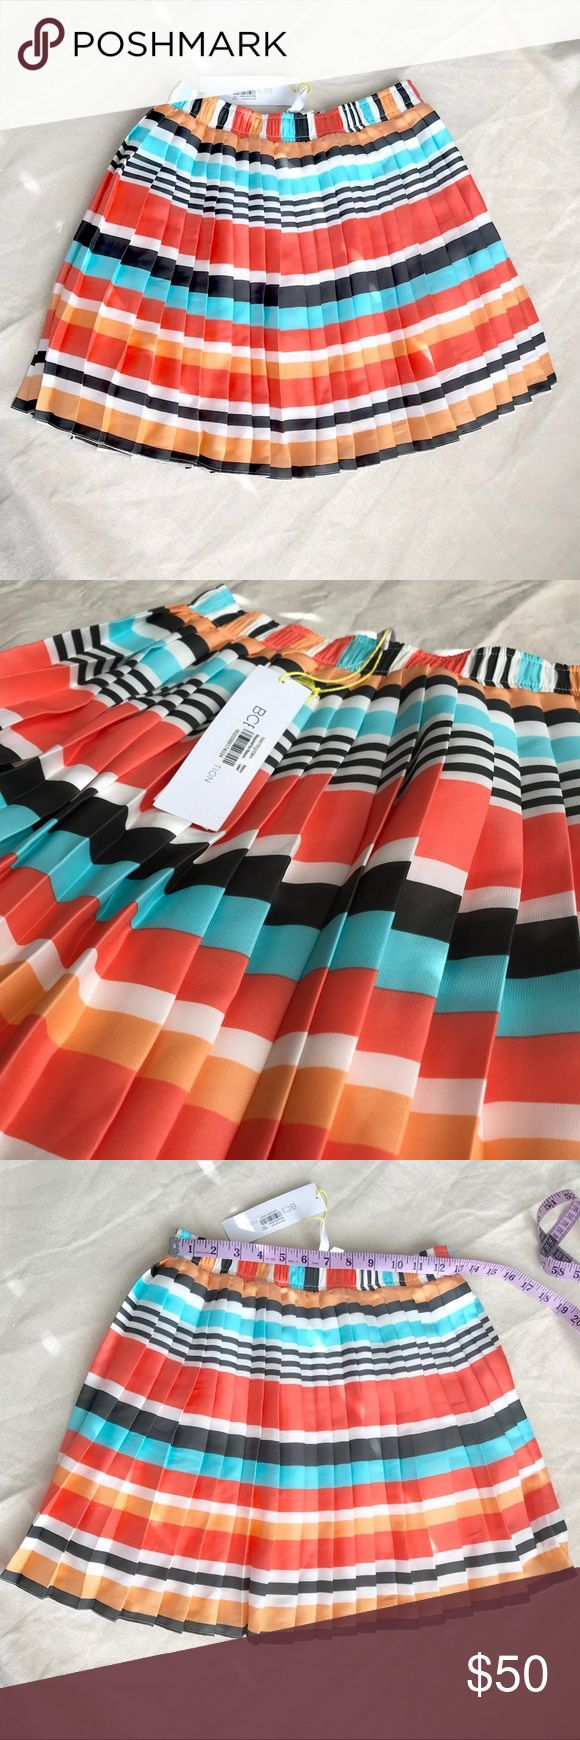 BCBG Multi Color Skirt 100% Polyester Multi color Flamingo skirt xs. Elastic waist band, BCBG Skirts